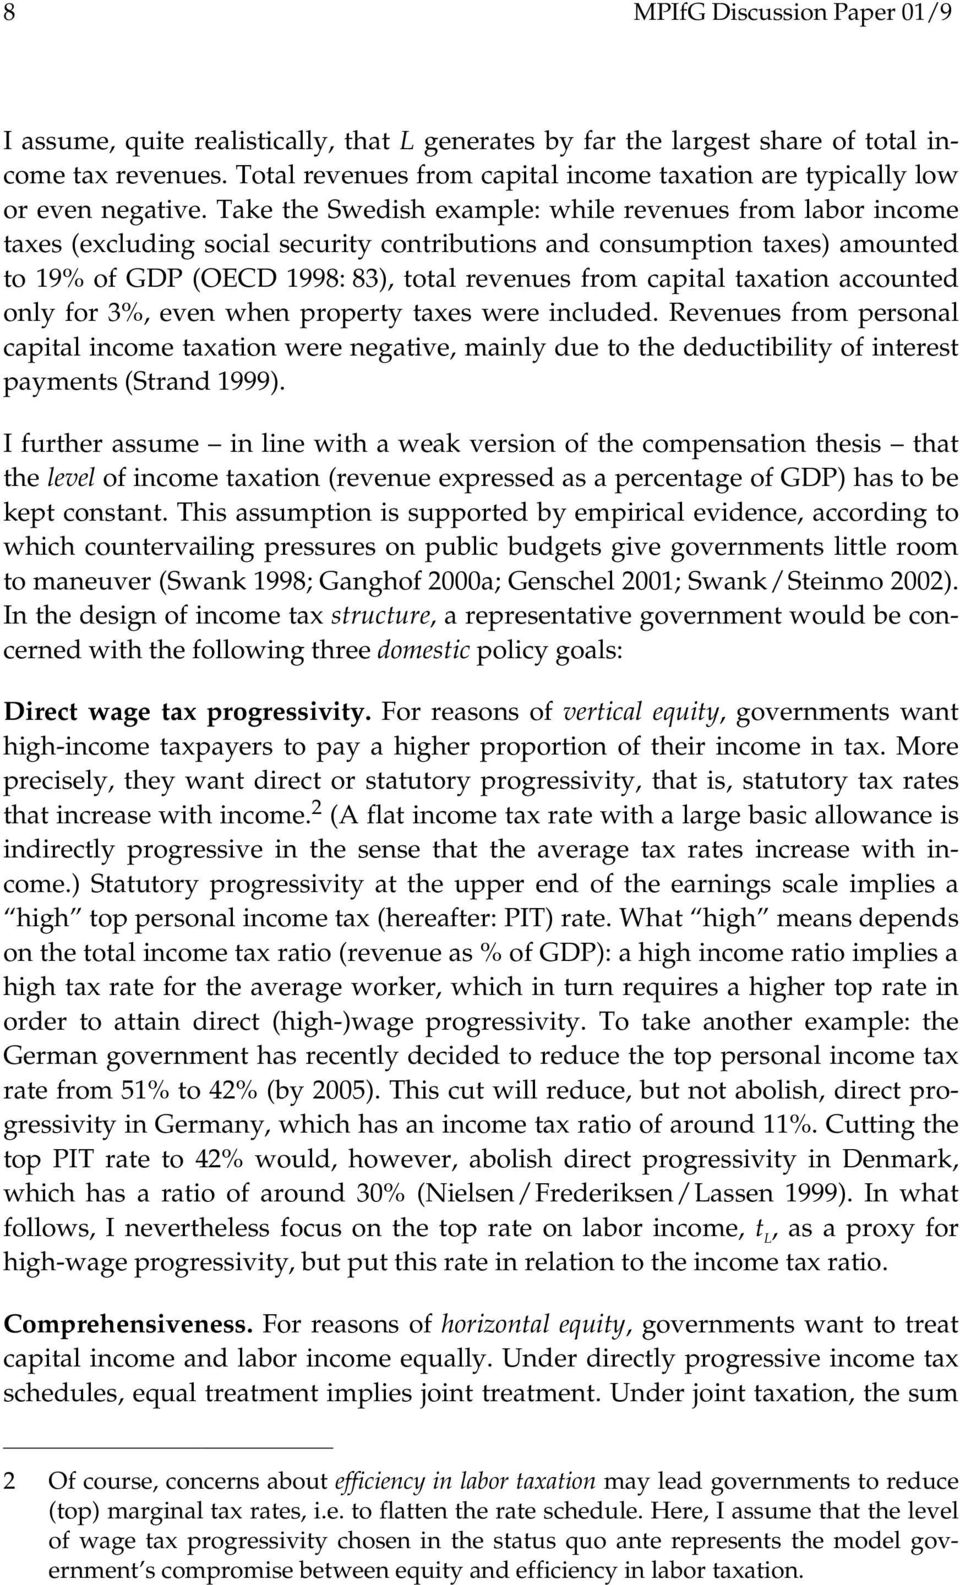 Take the Swedish example: while revenues from labor income taxes (excluding social security contributions and consumption taxes) amounted to 19% of GDP (OECD 1998: 83), total revenues from capital